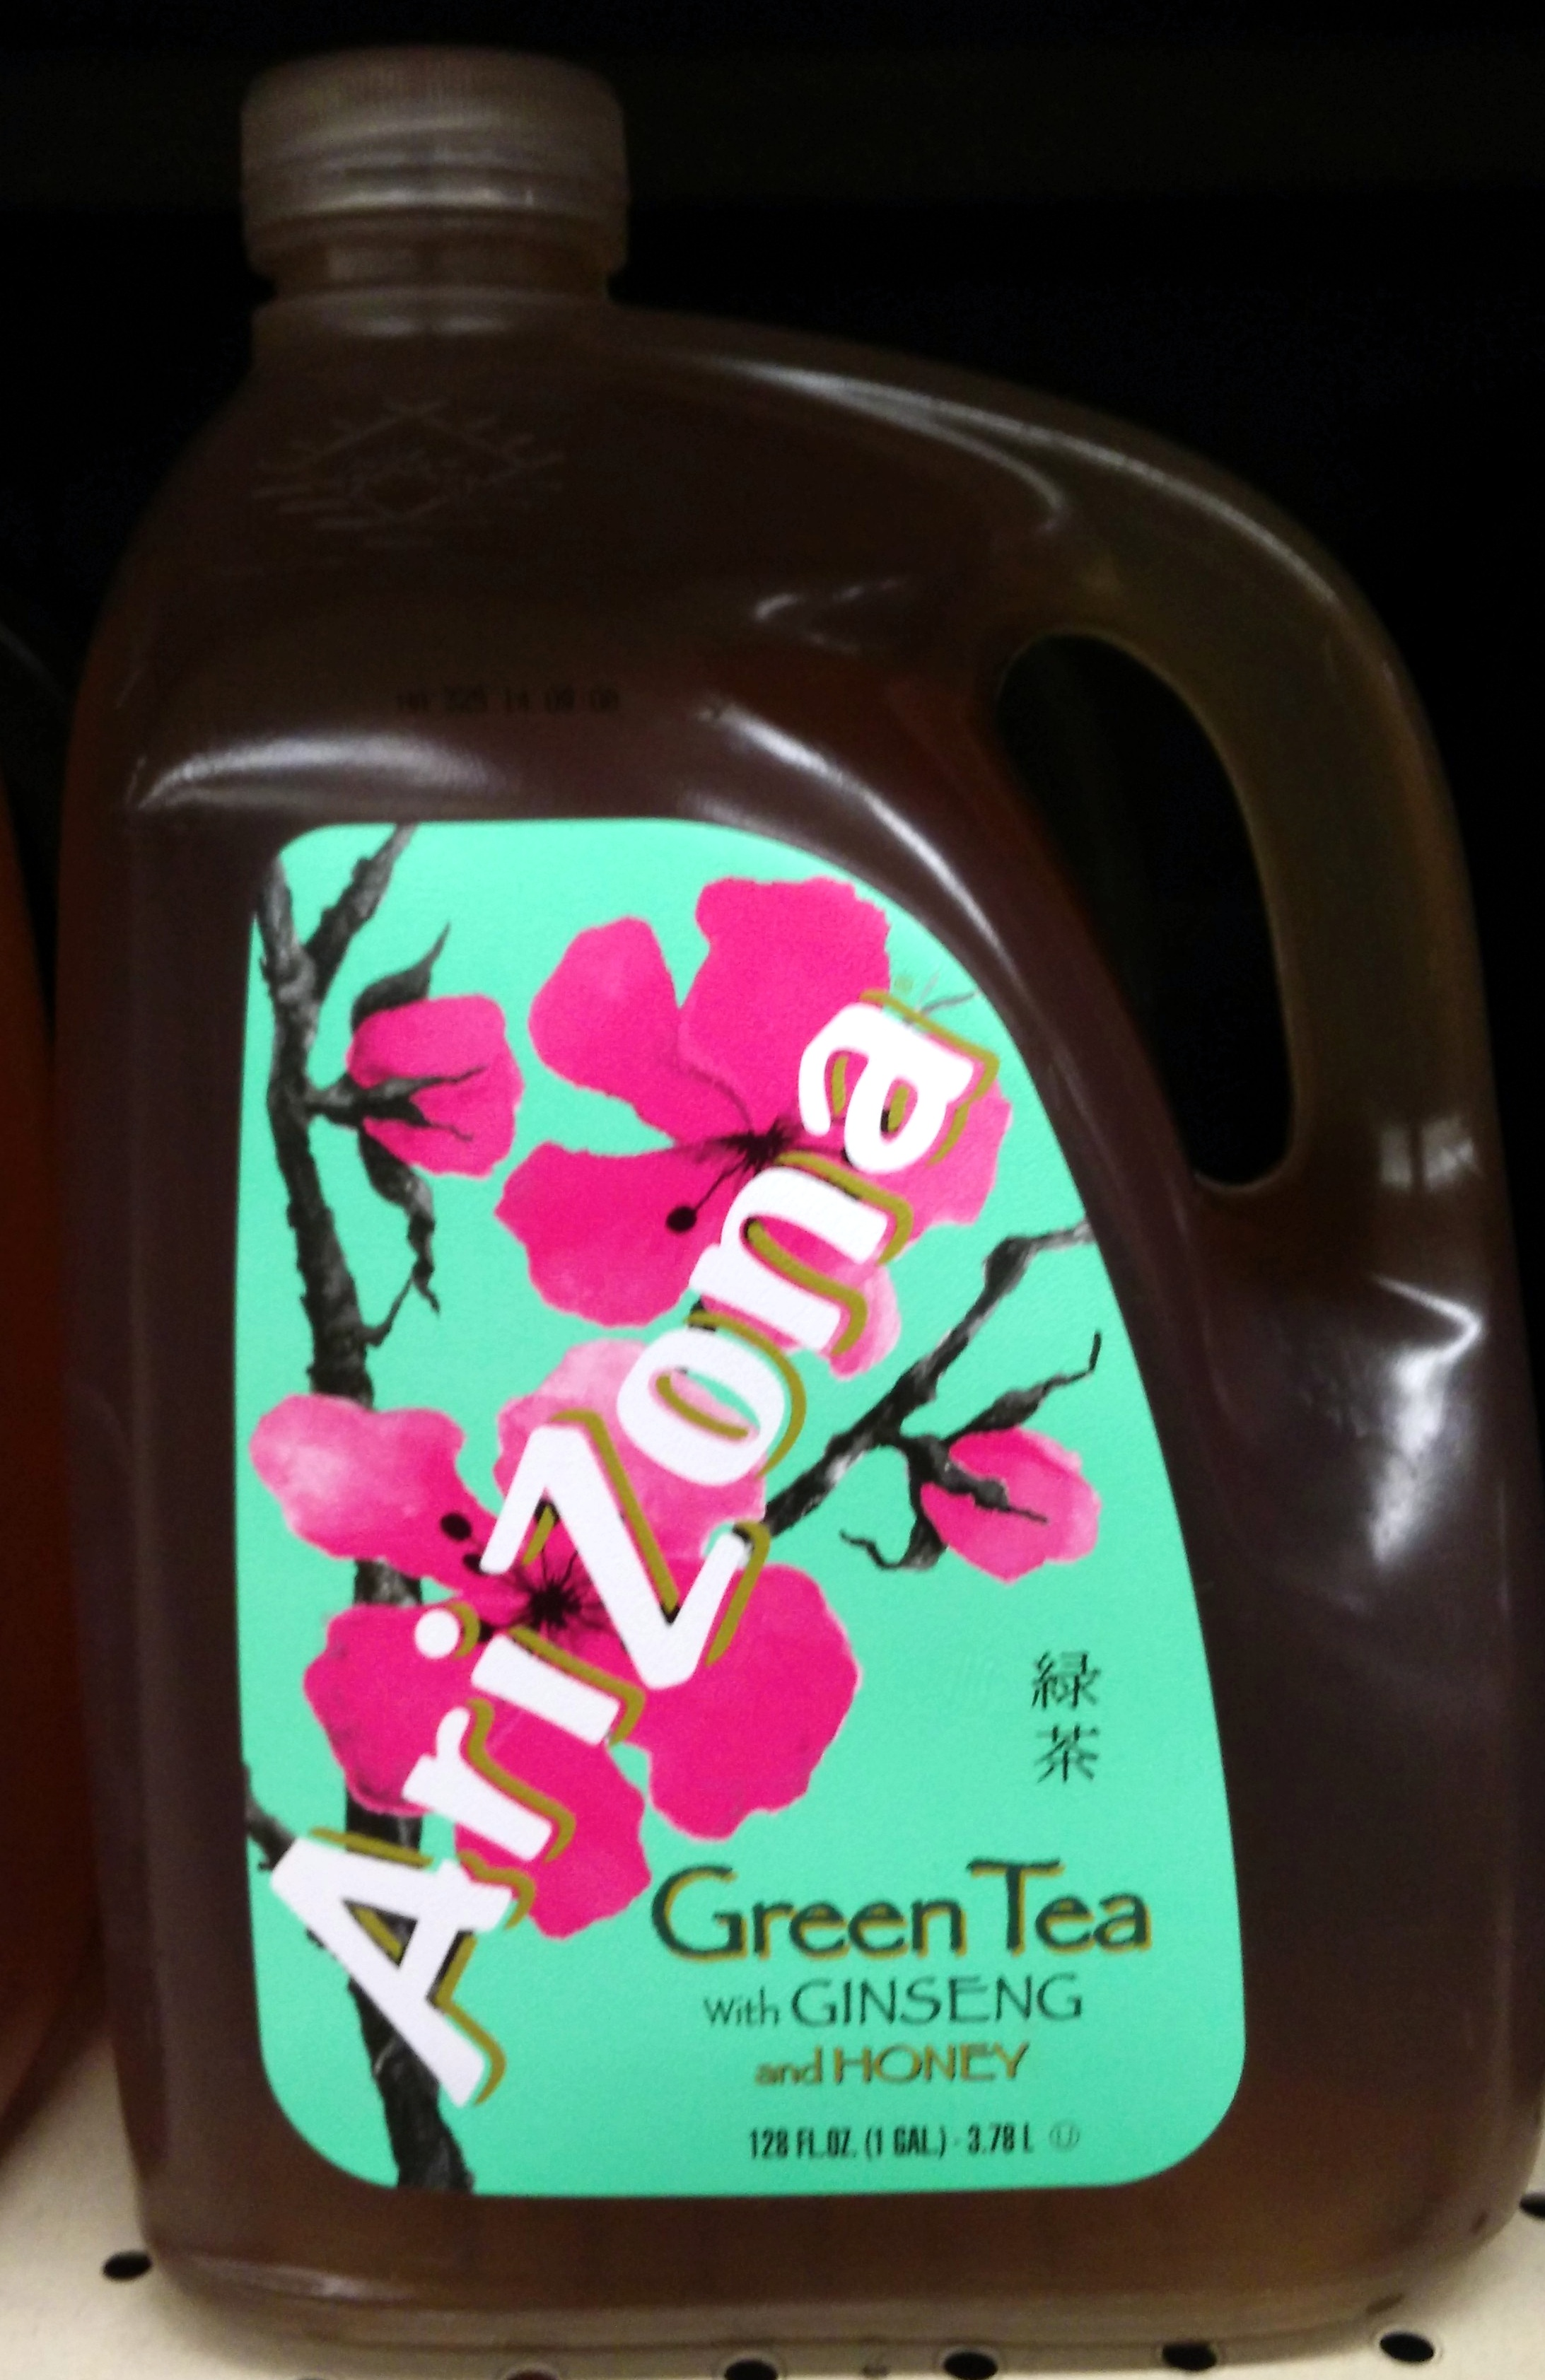 Green Tea with Ginseng and Honey - Product